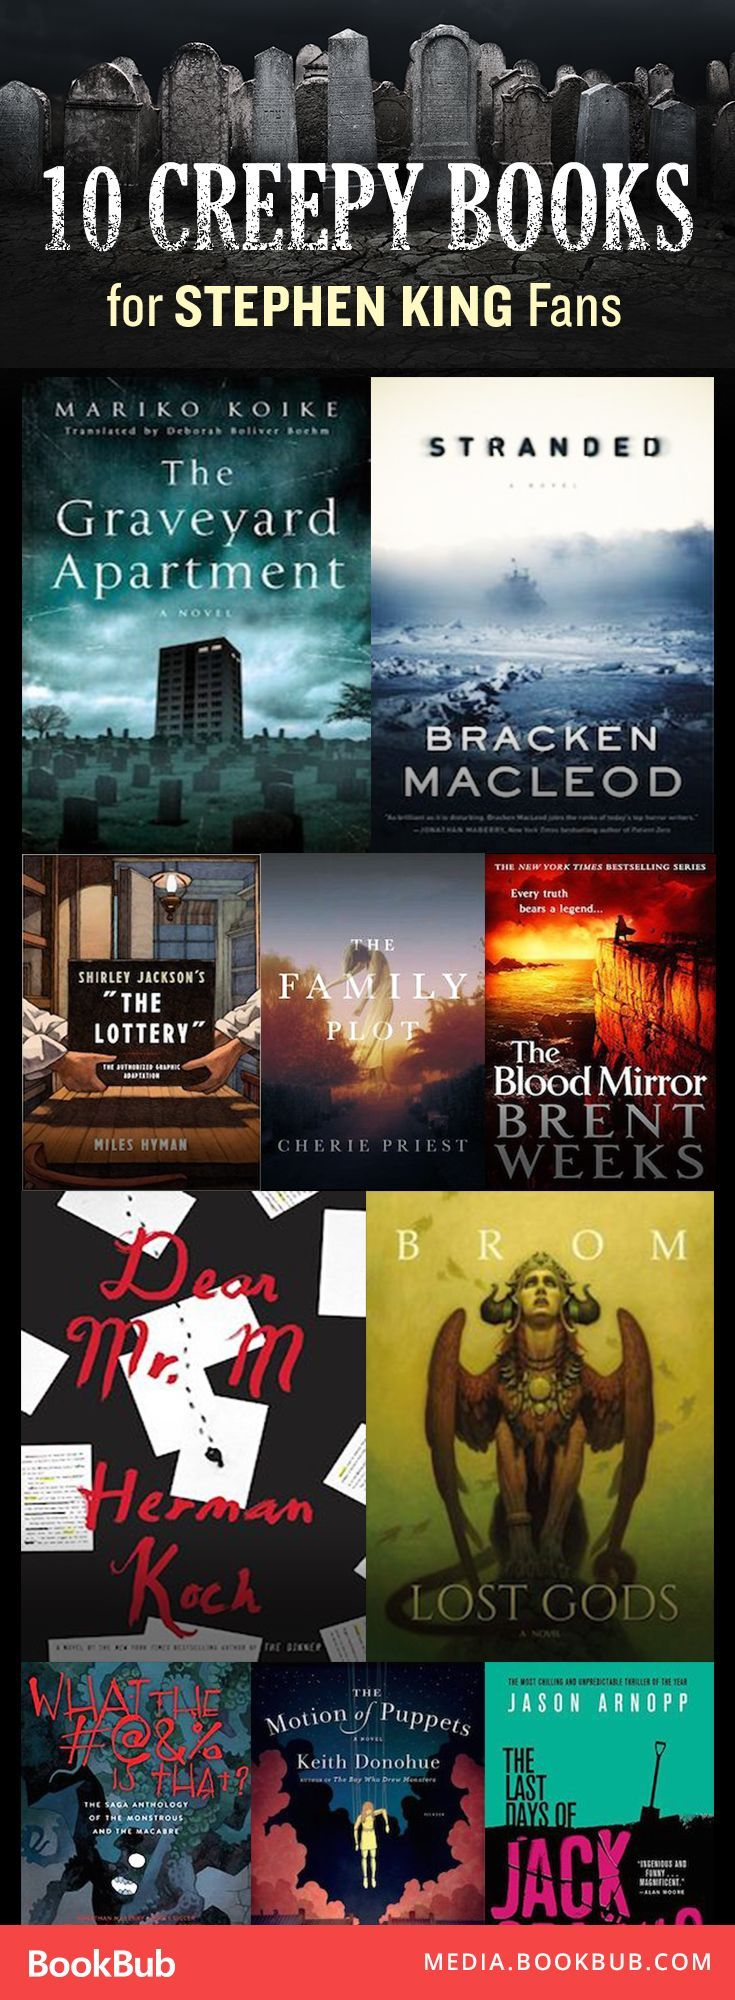 10 creepy thriller books to read if you're a fan of Stephen King.